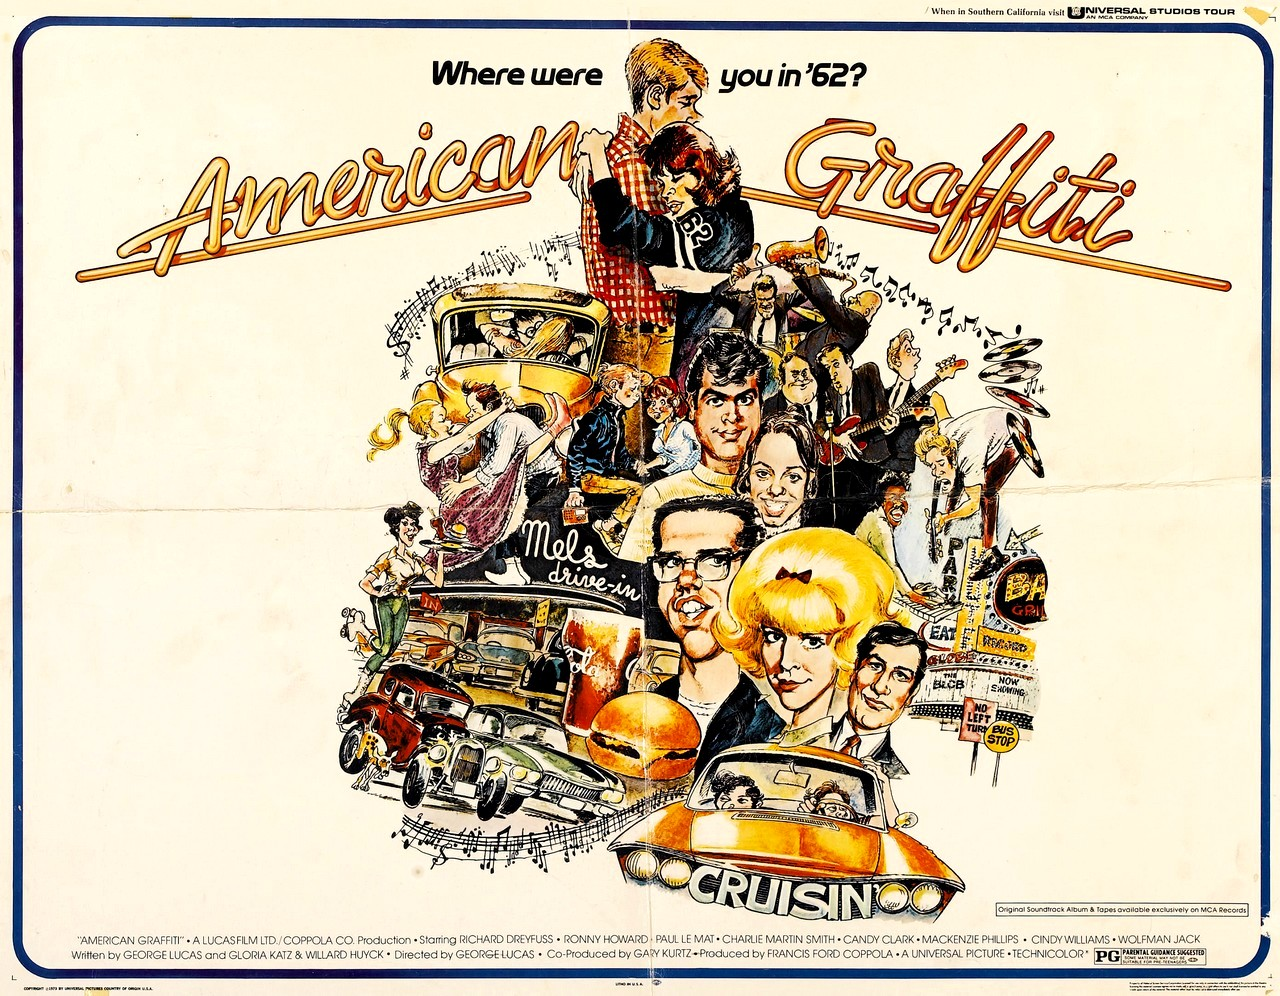 Cold Fusion Guy Was High School Anything Like American Graffiti